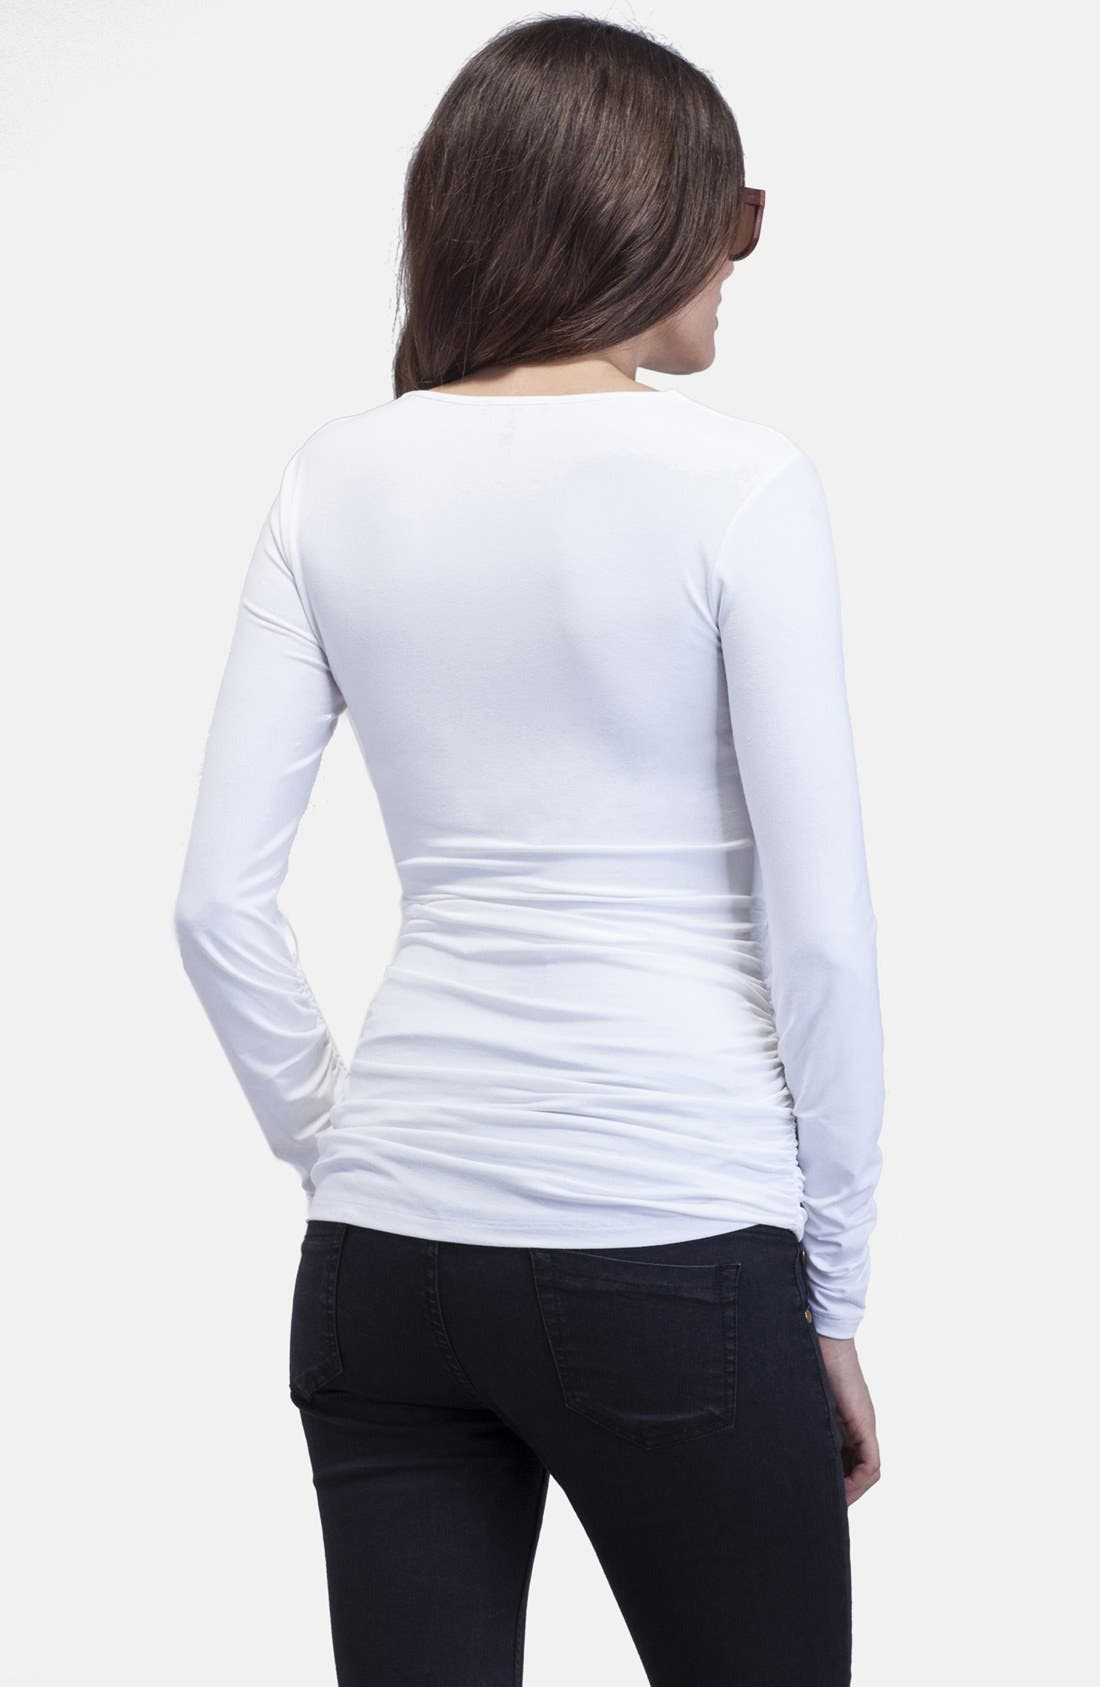 'The Scoop' Maternity Top,                             Alternate thumbnail 4, color,                             PURE WHITE